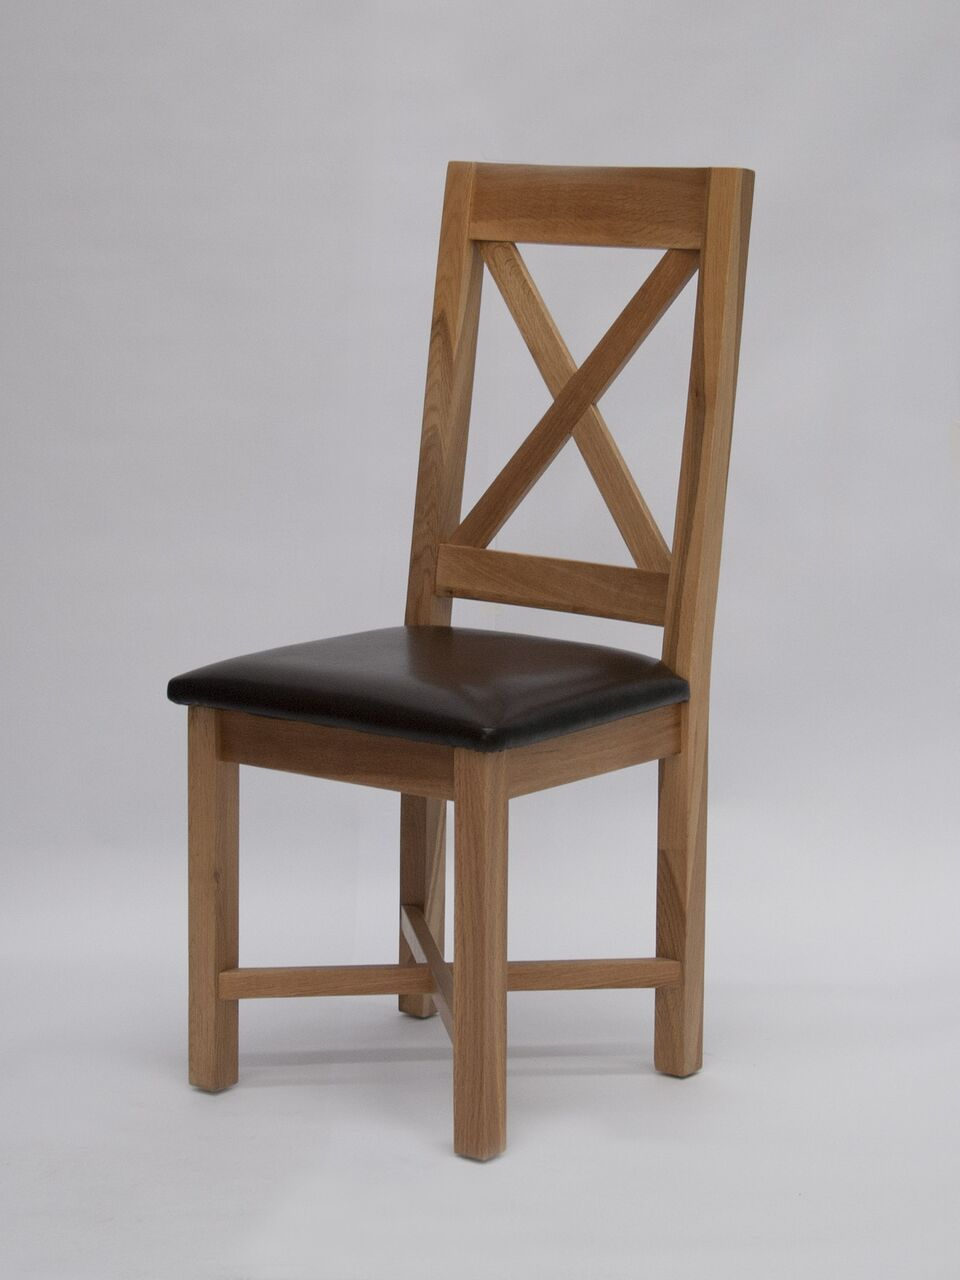 XBACK OAK CHAIR